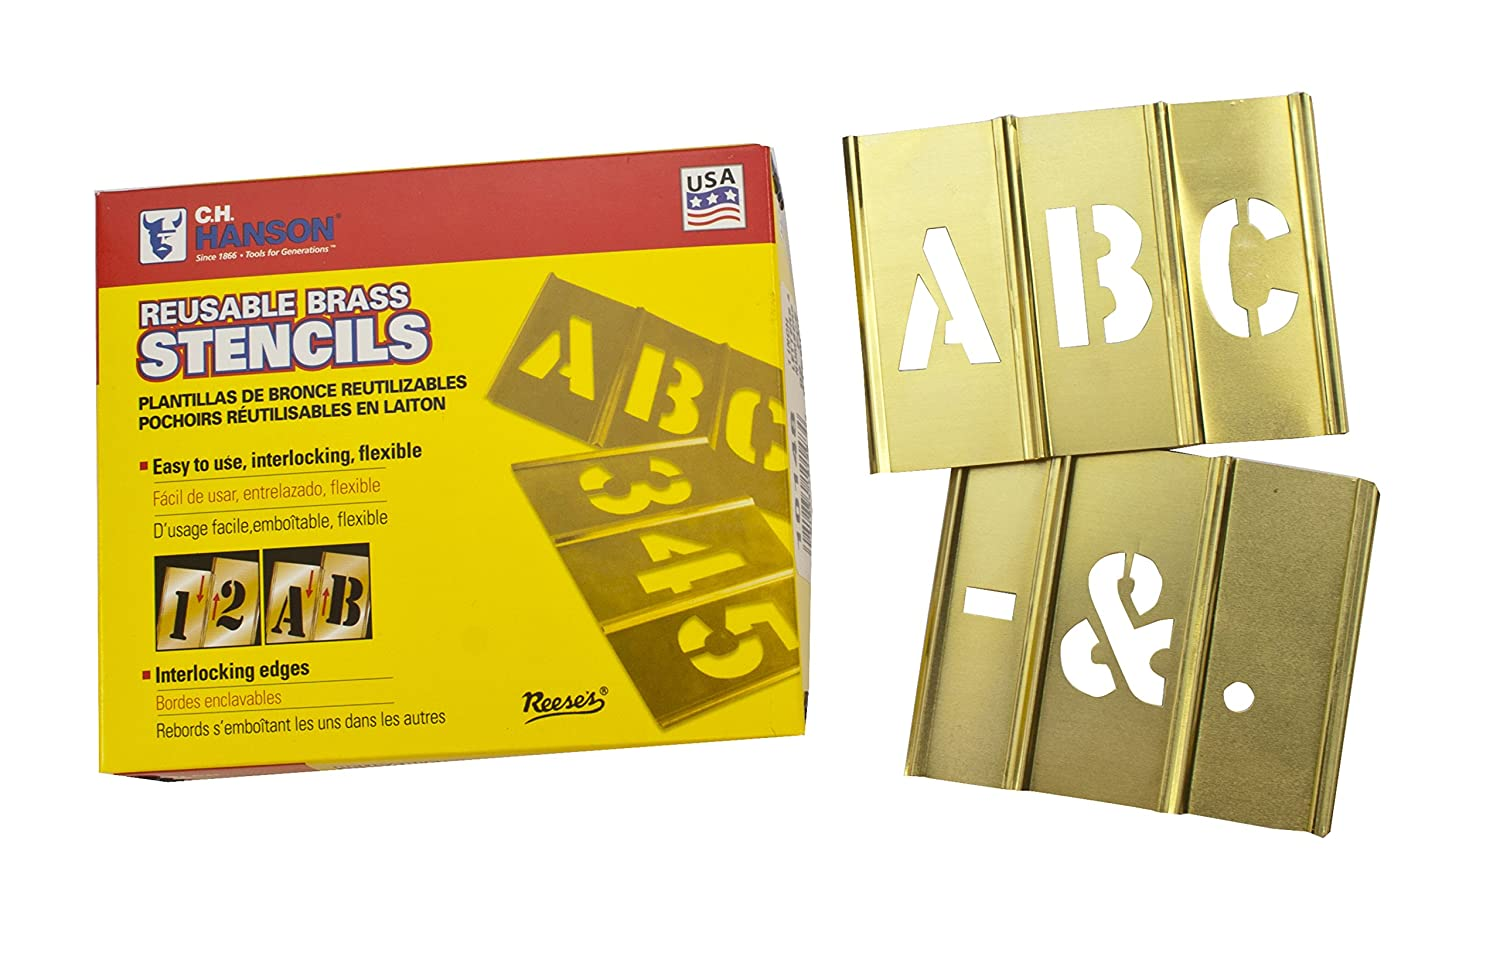 CH Hanson 10195 3 inch Plastic Interlocking Stencils Letters and Numbers 138 Piece Set